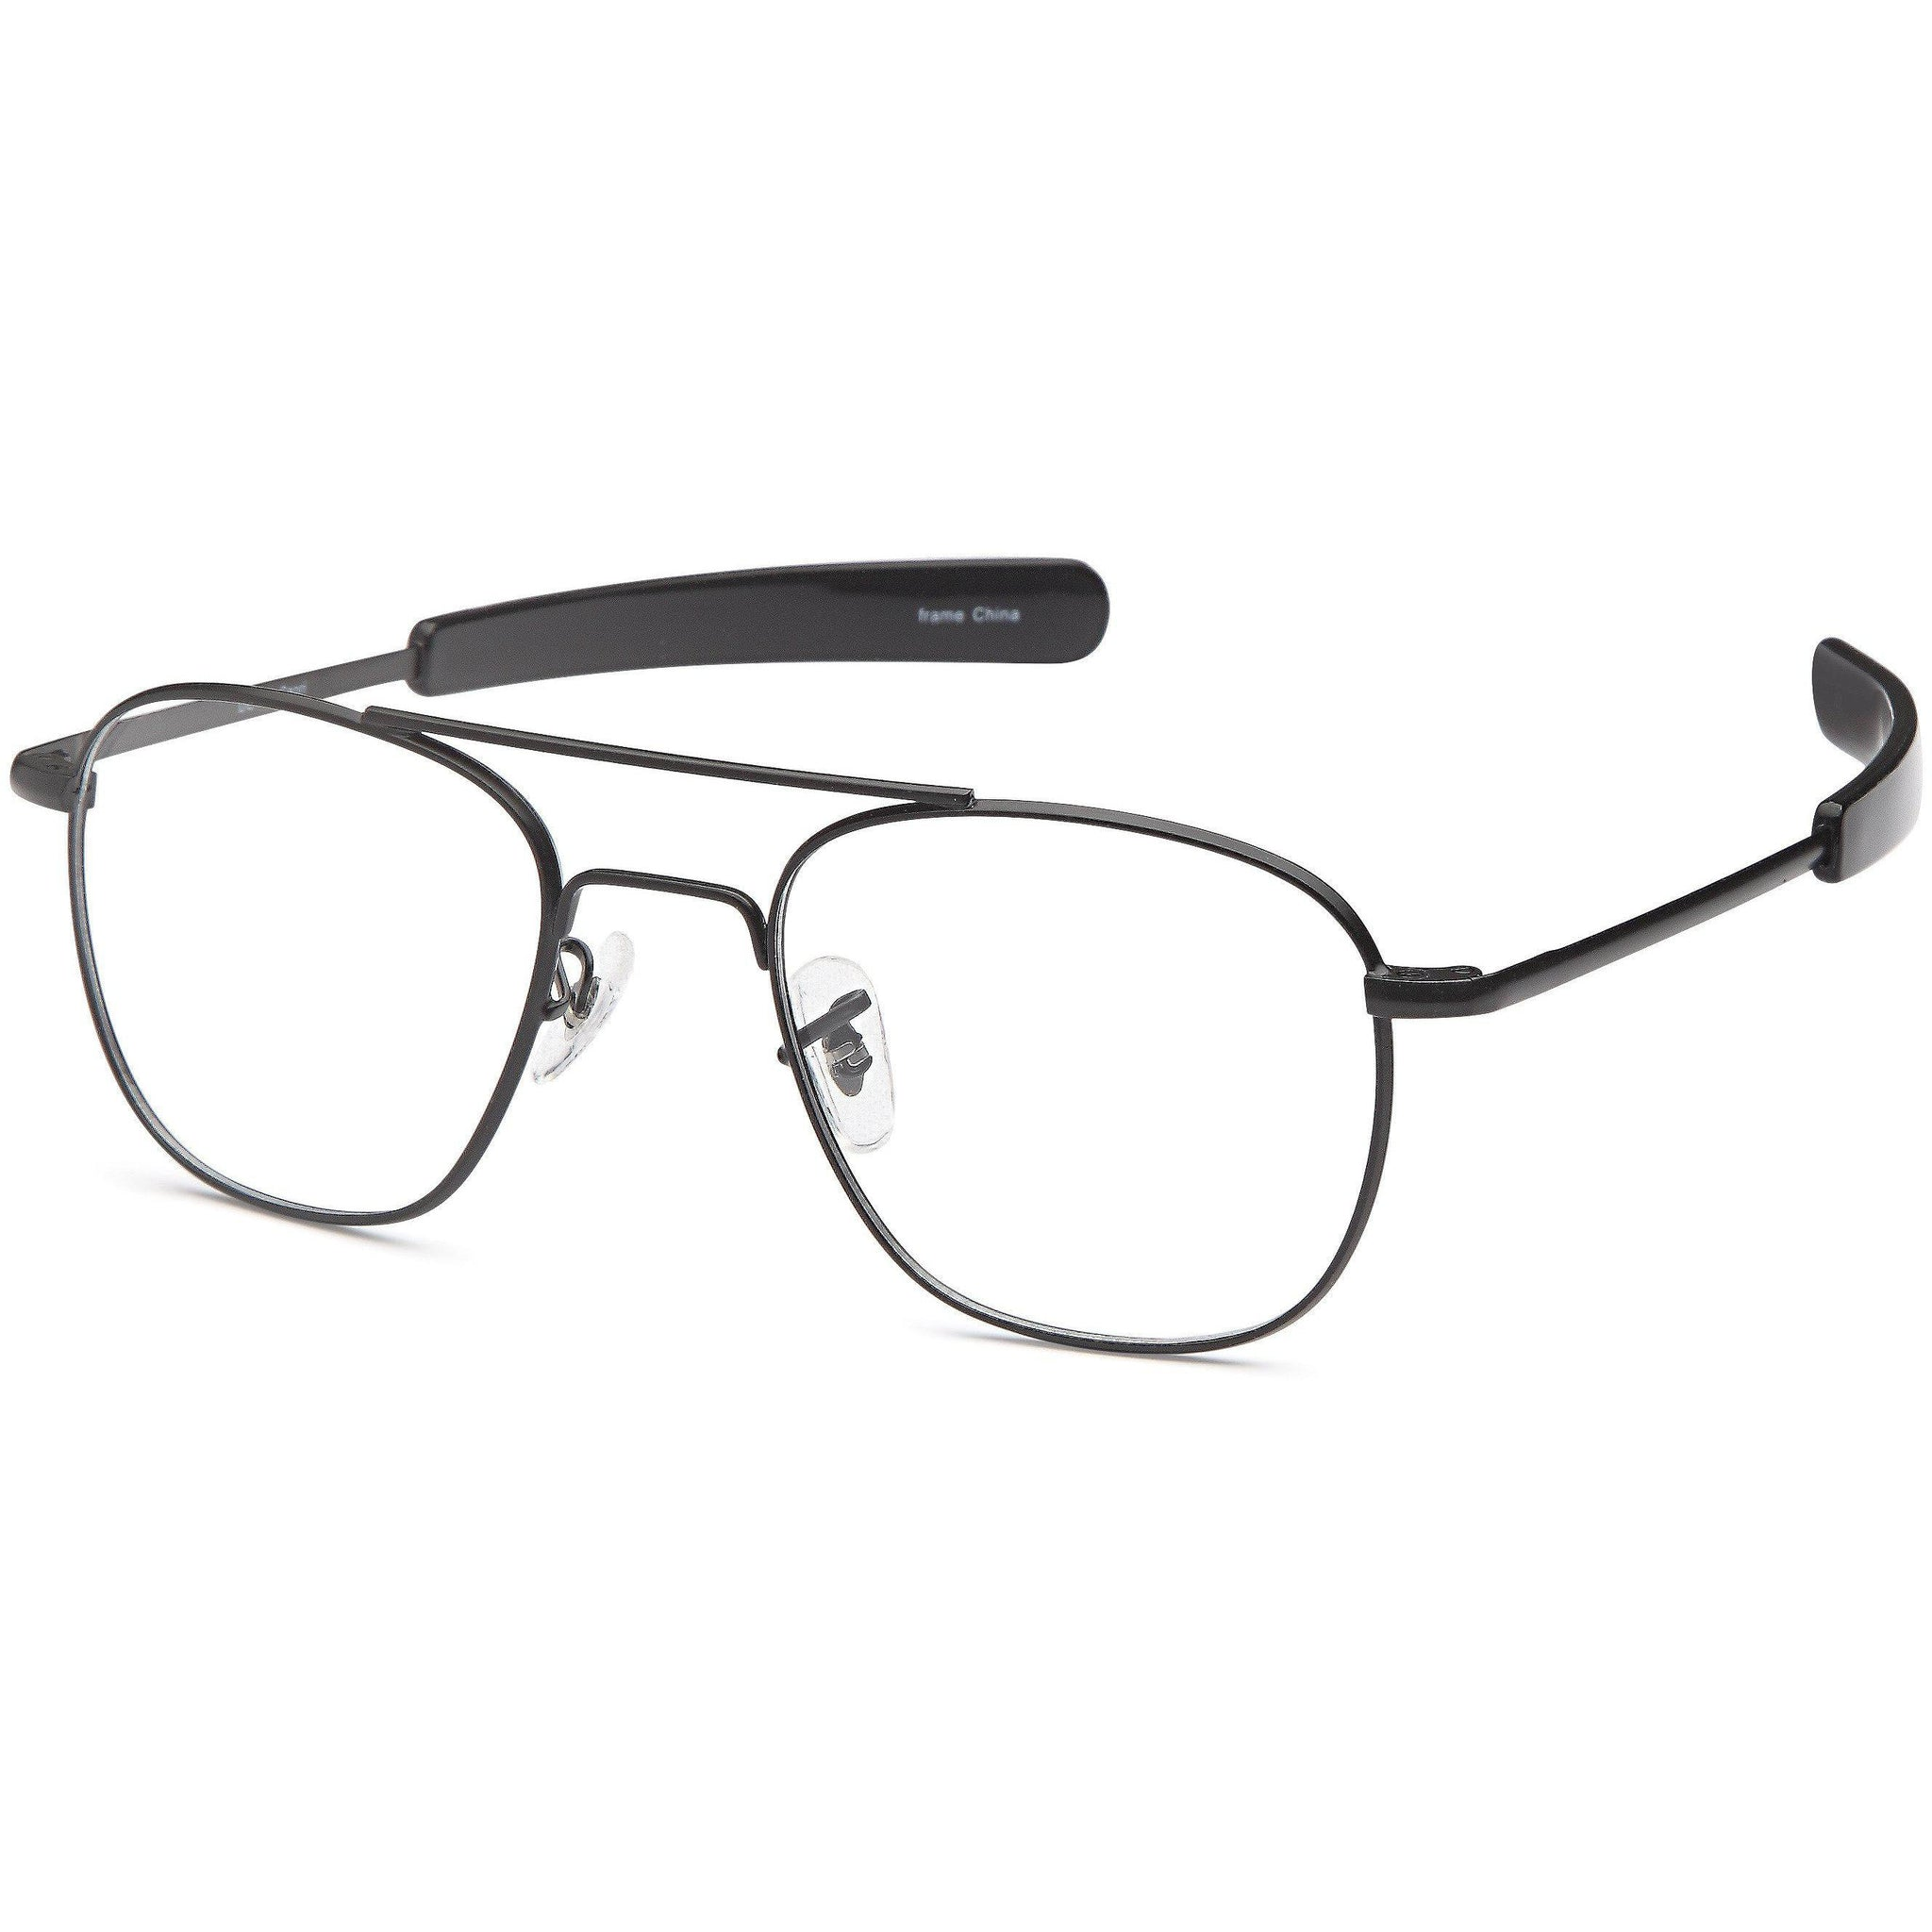 Di Caprio Prescription Glasses DC 158 Eyeglasses Frame - timetoshade